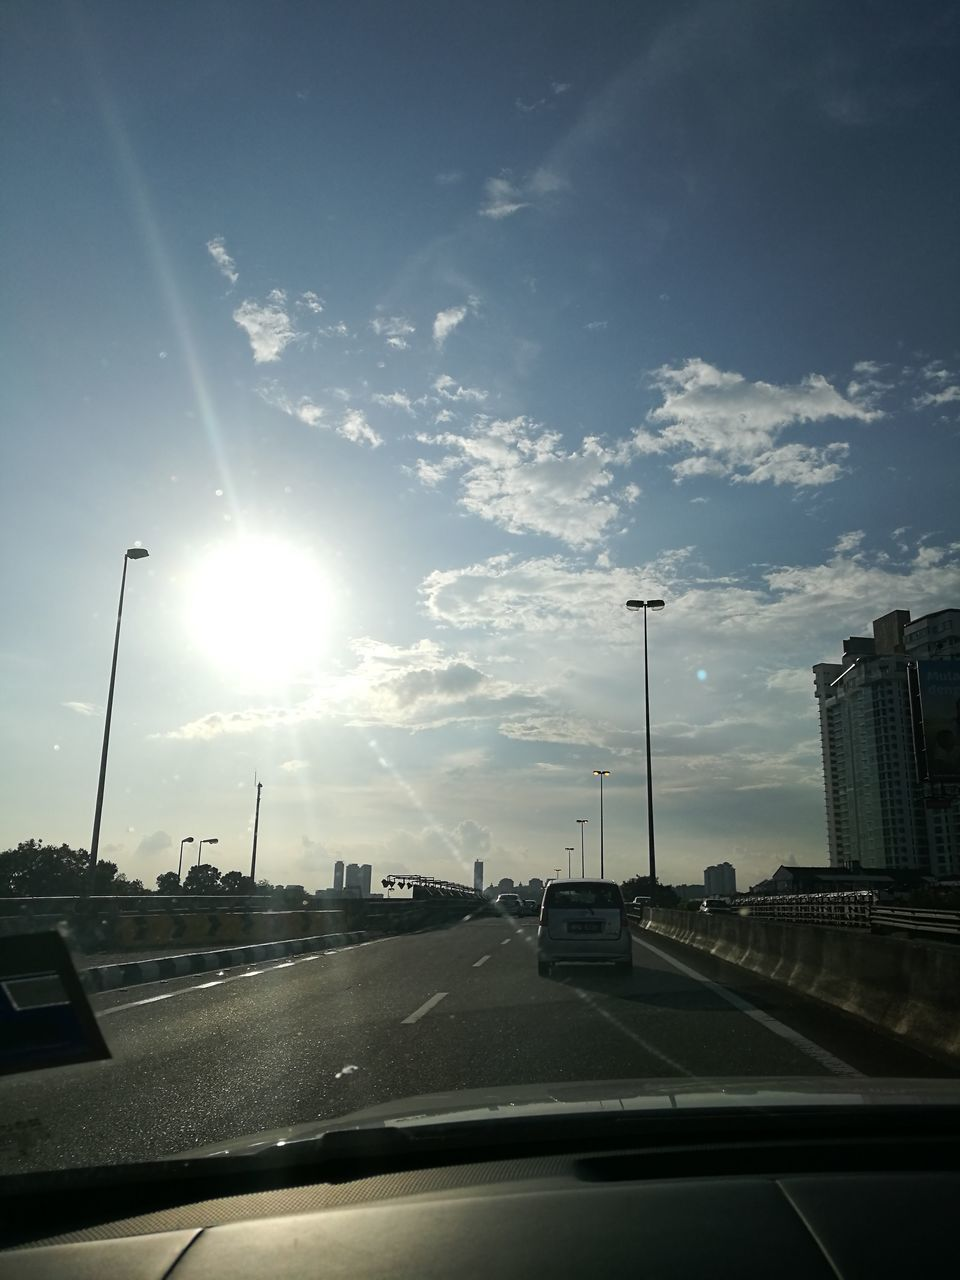 car, transportation, land vehicle, vehicle interior, mode of transport, car interior, sky, windshield, road, sunbeam, sun, cloud - sky, car point of view, sunlight, no people, built structure, day, city, architecture, sunset, outdoors, nature